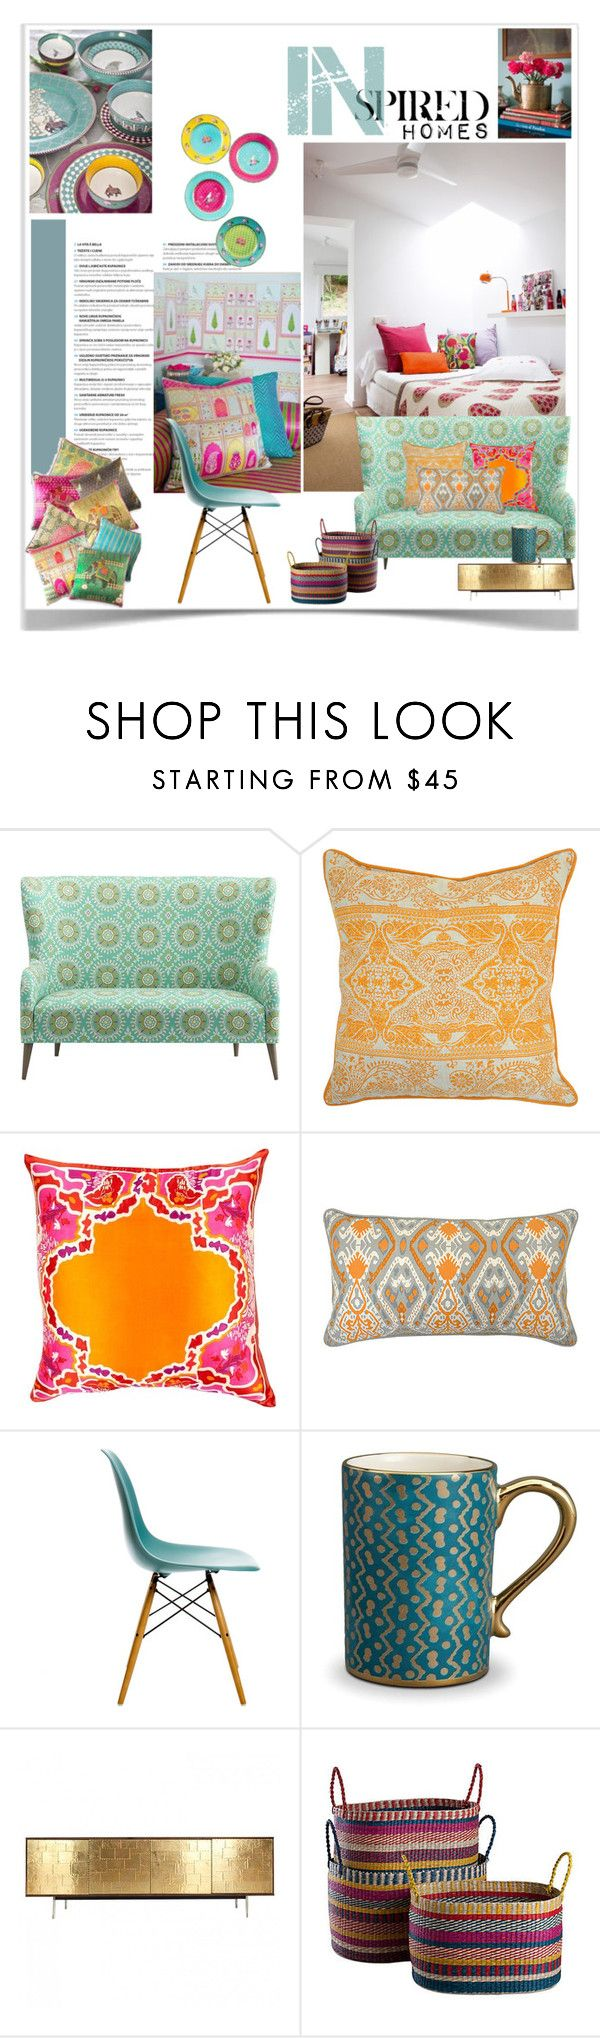 best villa home collection images on pinterest  accent  -  villa home collection india inspired by malisha ❤ liked on polyvorefeaturing interior interiors interior